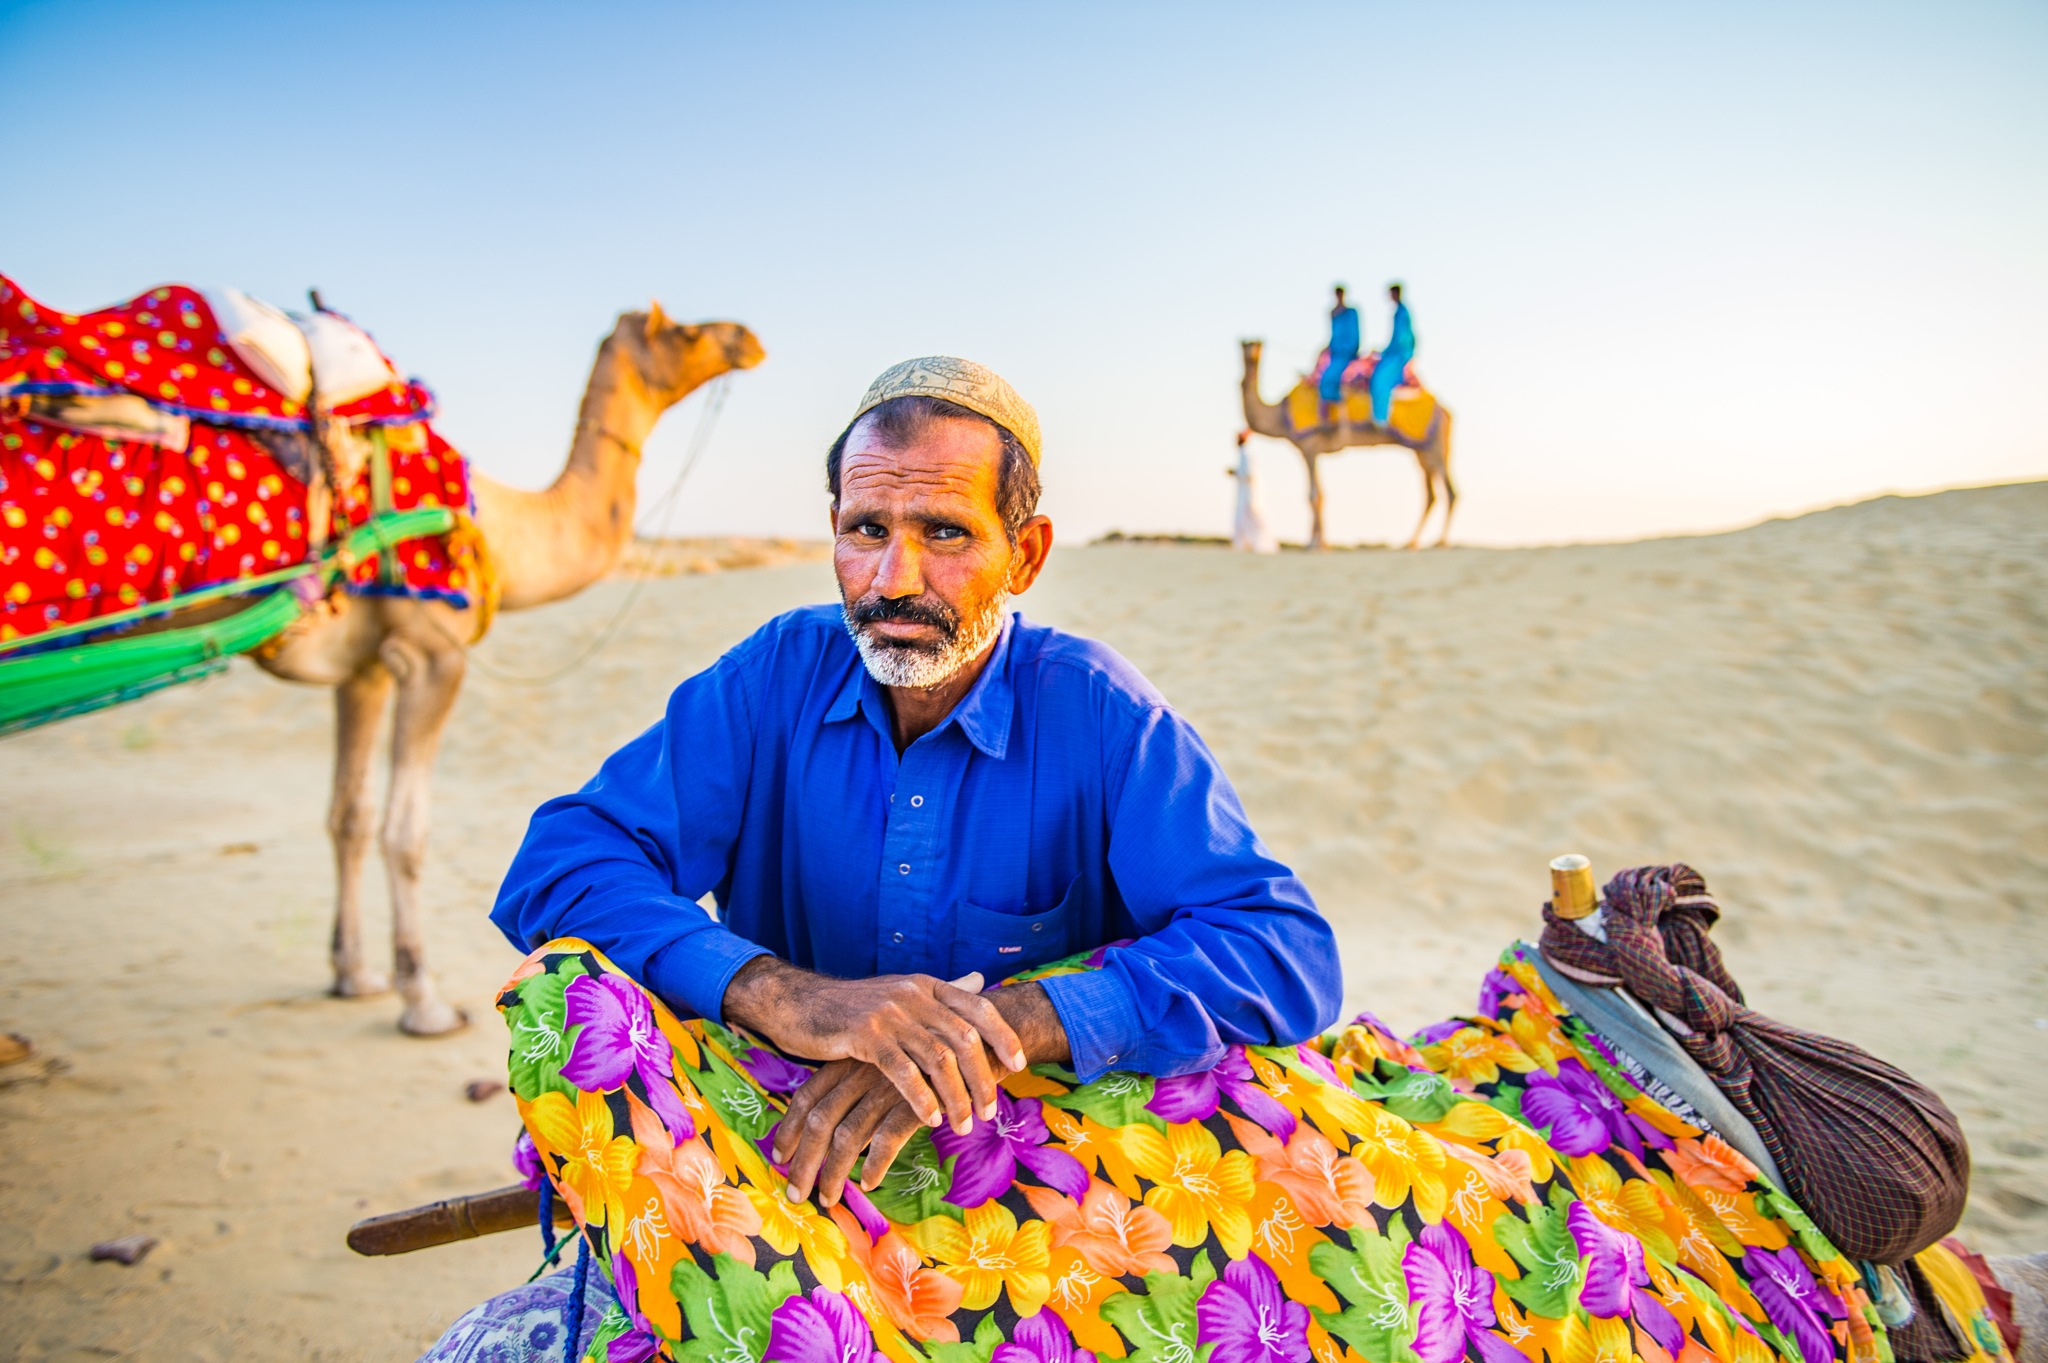 Jaisalmer Camel Ride by Susan Laurie